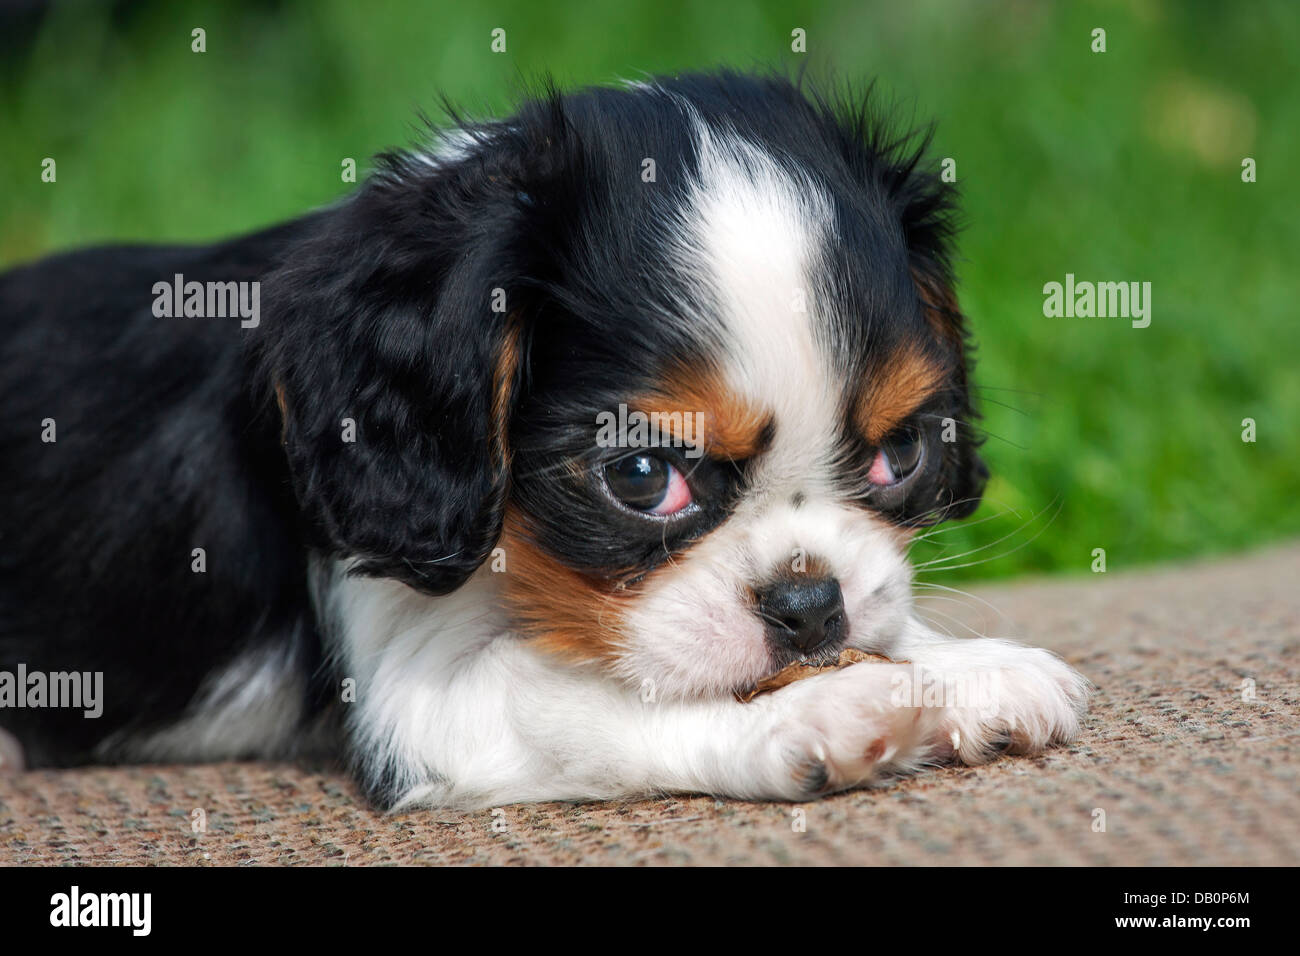 Cute Cavalier King Charles Spaniel Pup Lying In Garden Stock Photo Alamy